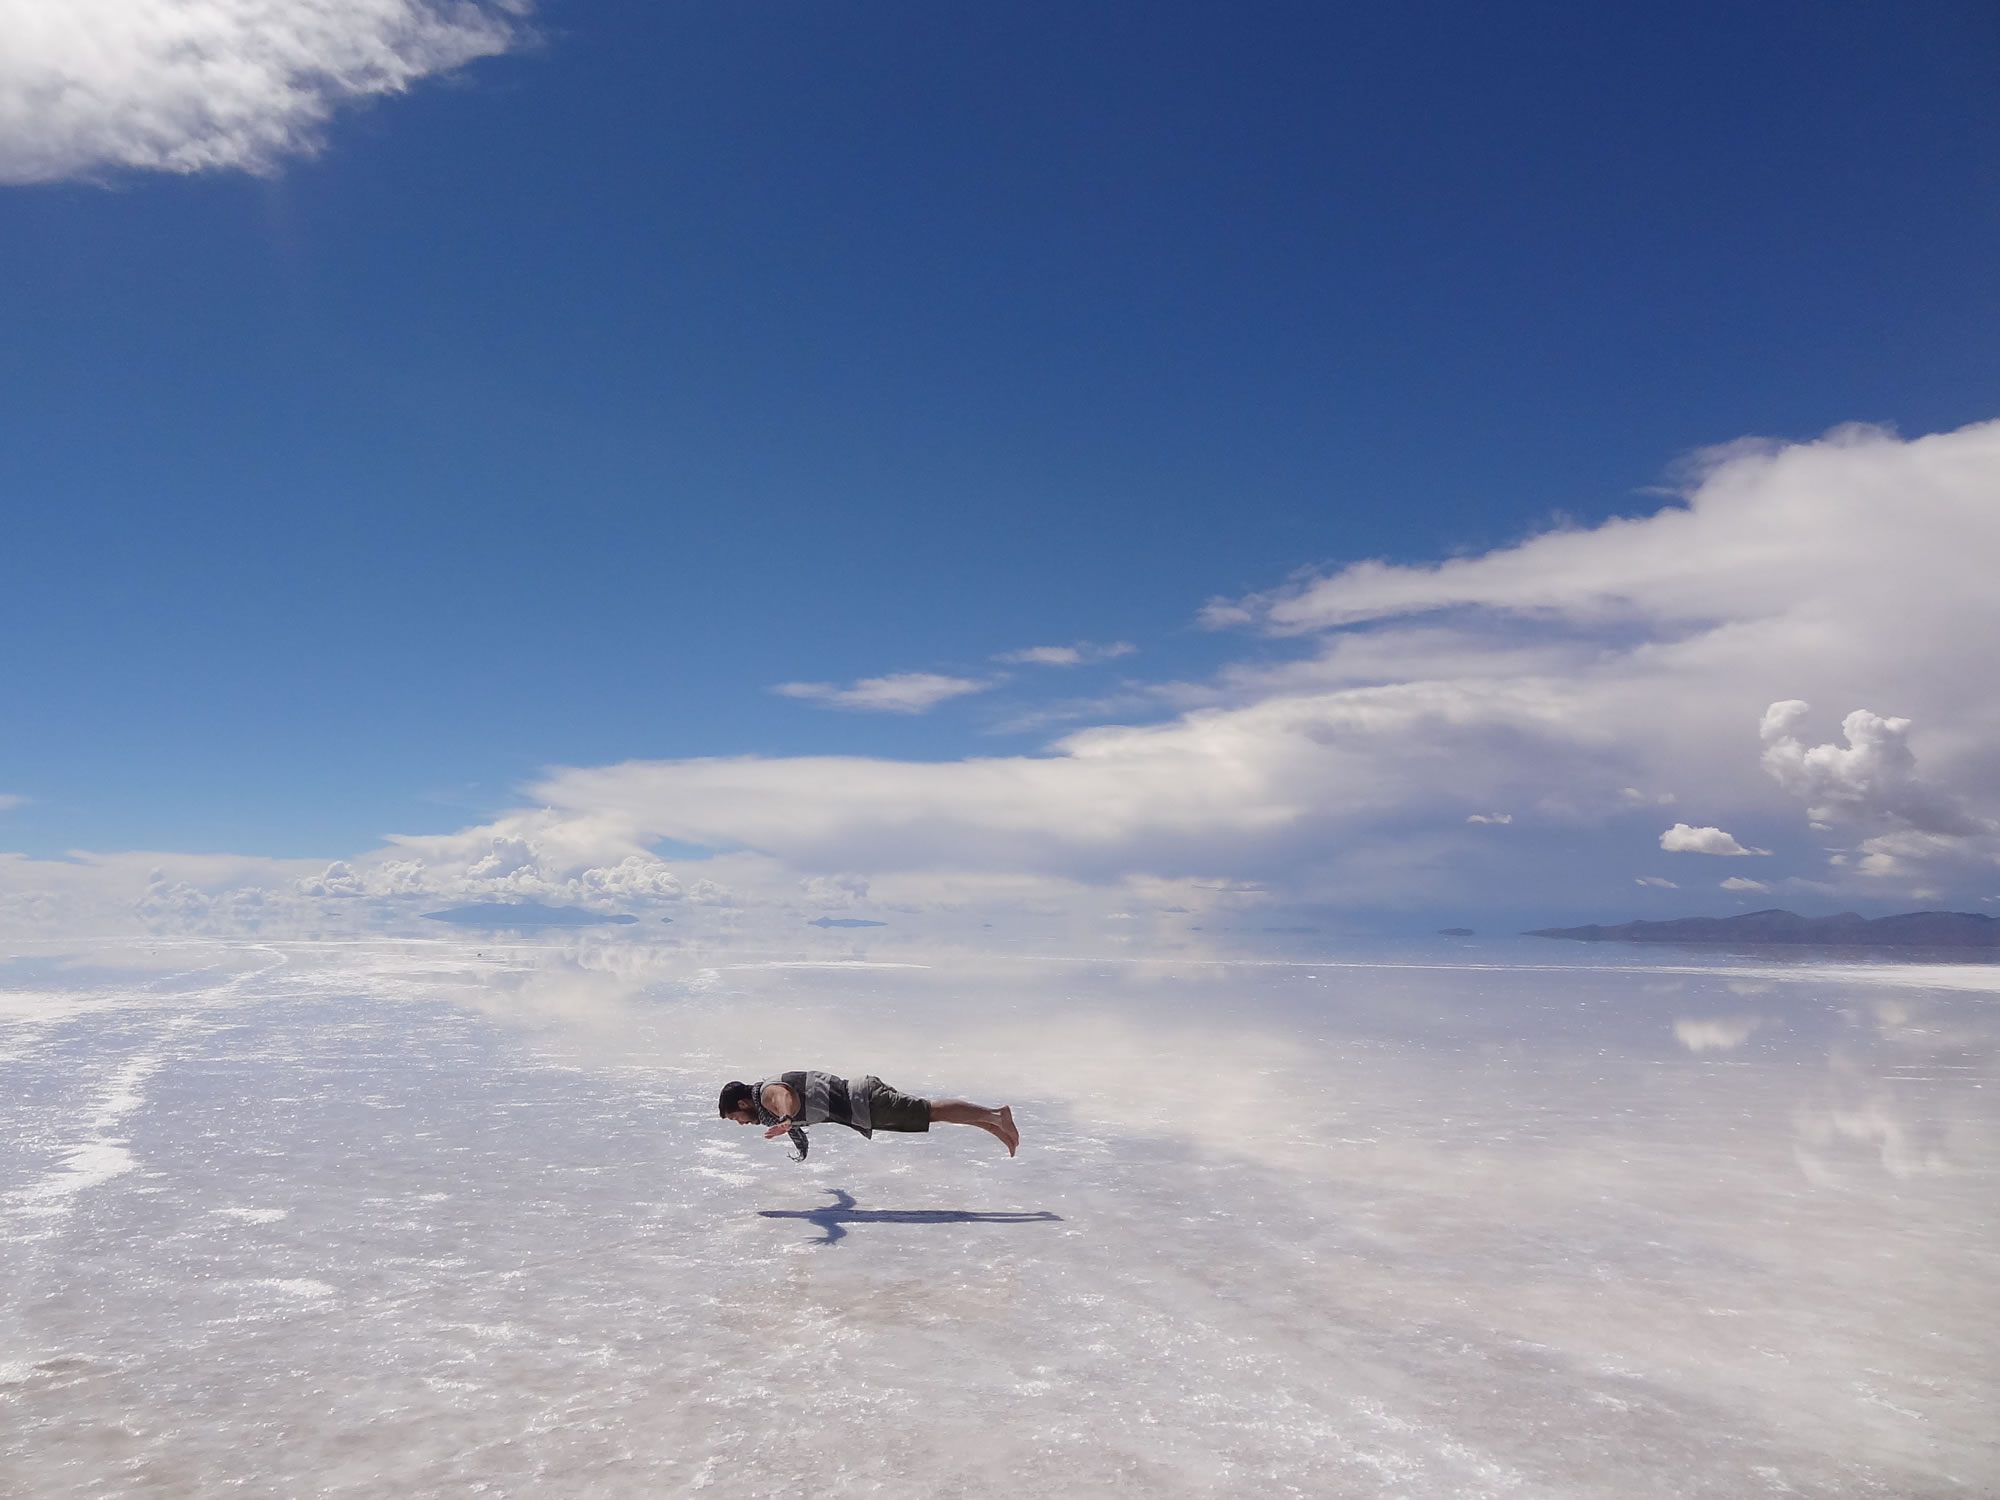 Floating above the salt flat